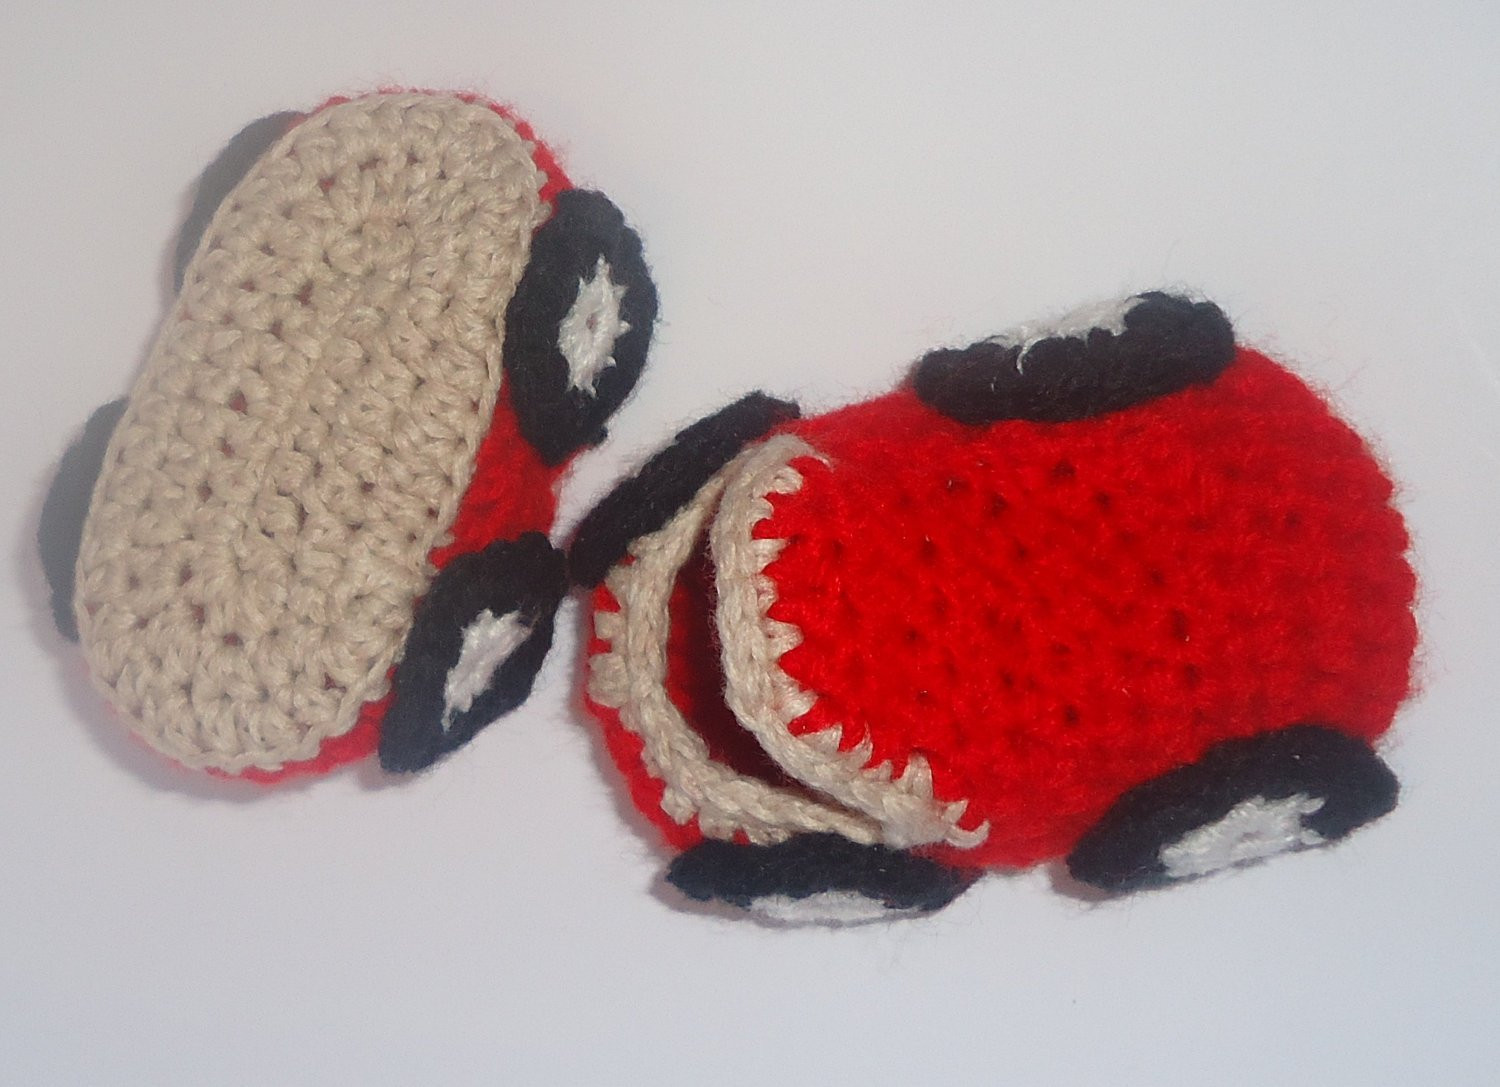 Luxury Cute Crocheted Red Car Slippers Shoes for Baby Crochet Baby Crochet toddler Slippers Of Delightful 50 Images Crochet toddler Slippers